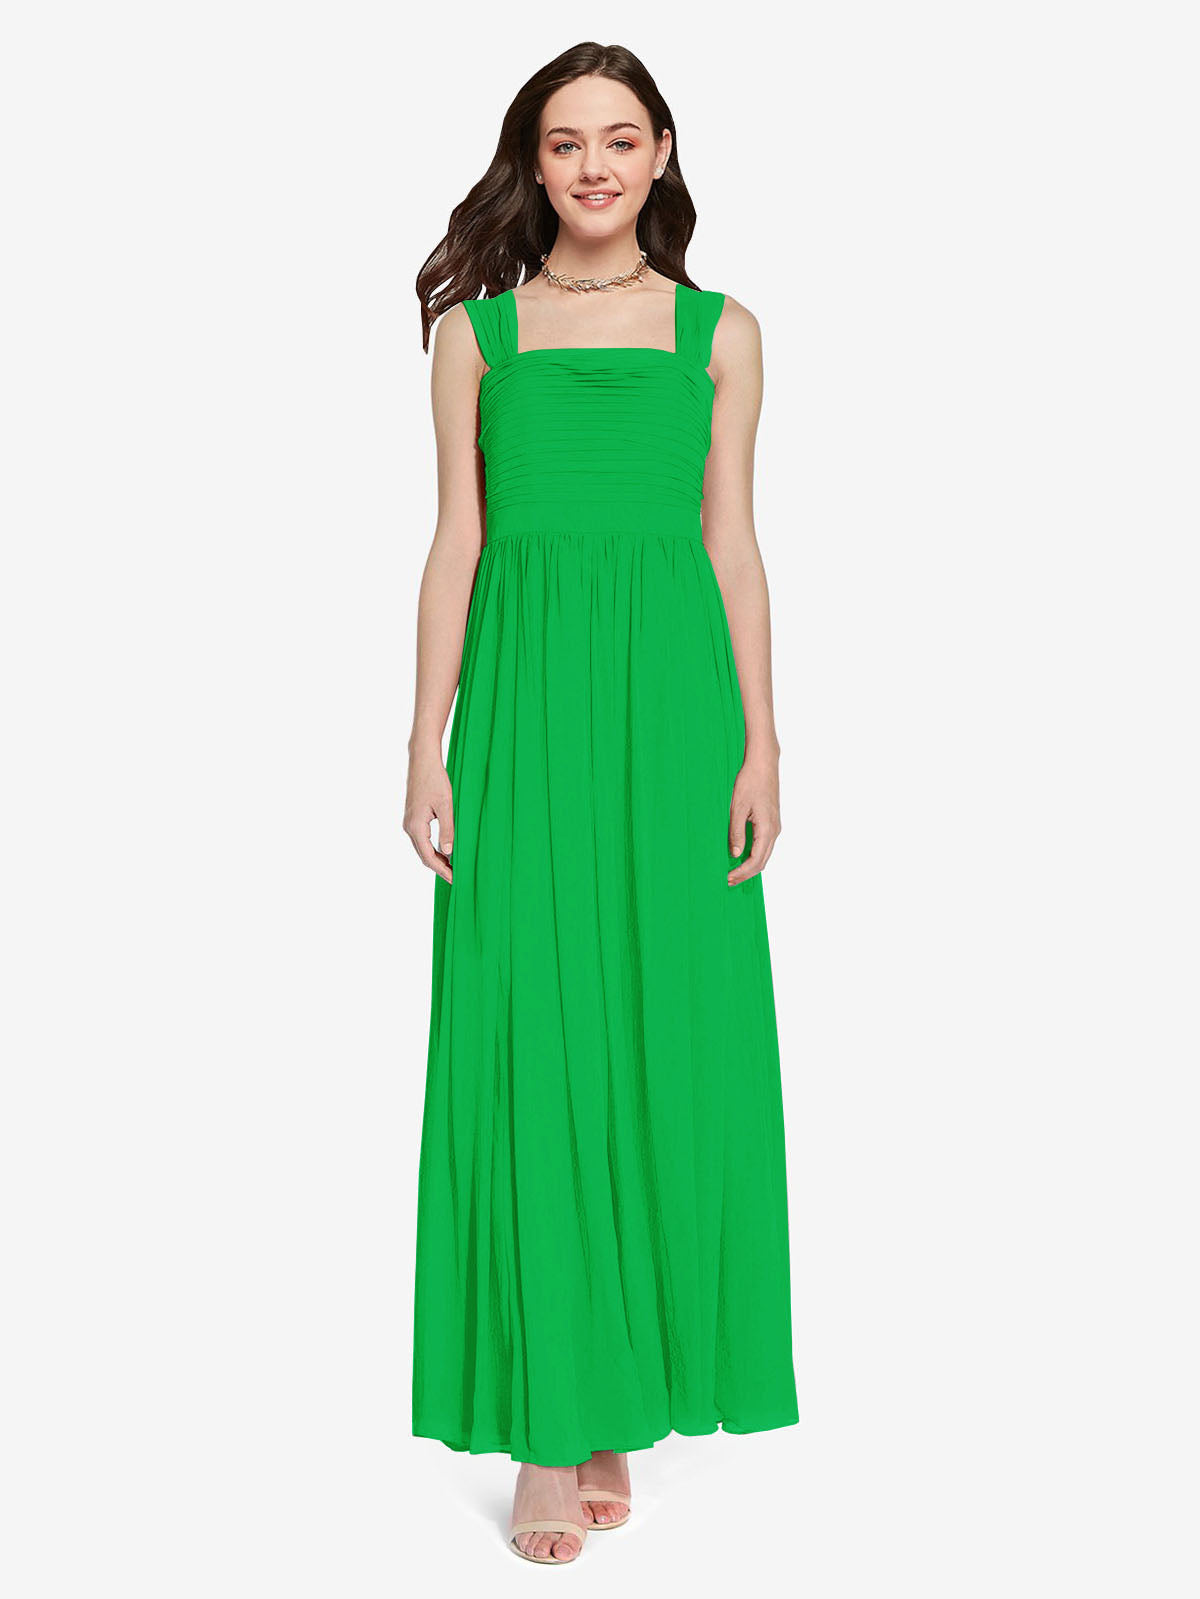 Long A-Line Square Sleeveless Green Chiffon Bridesmaid Dress Aldridge